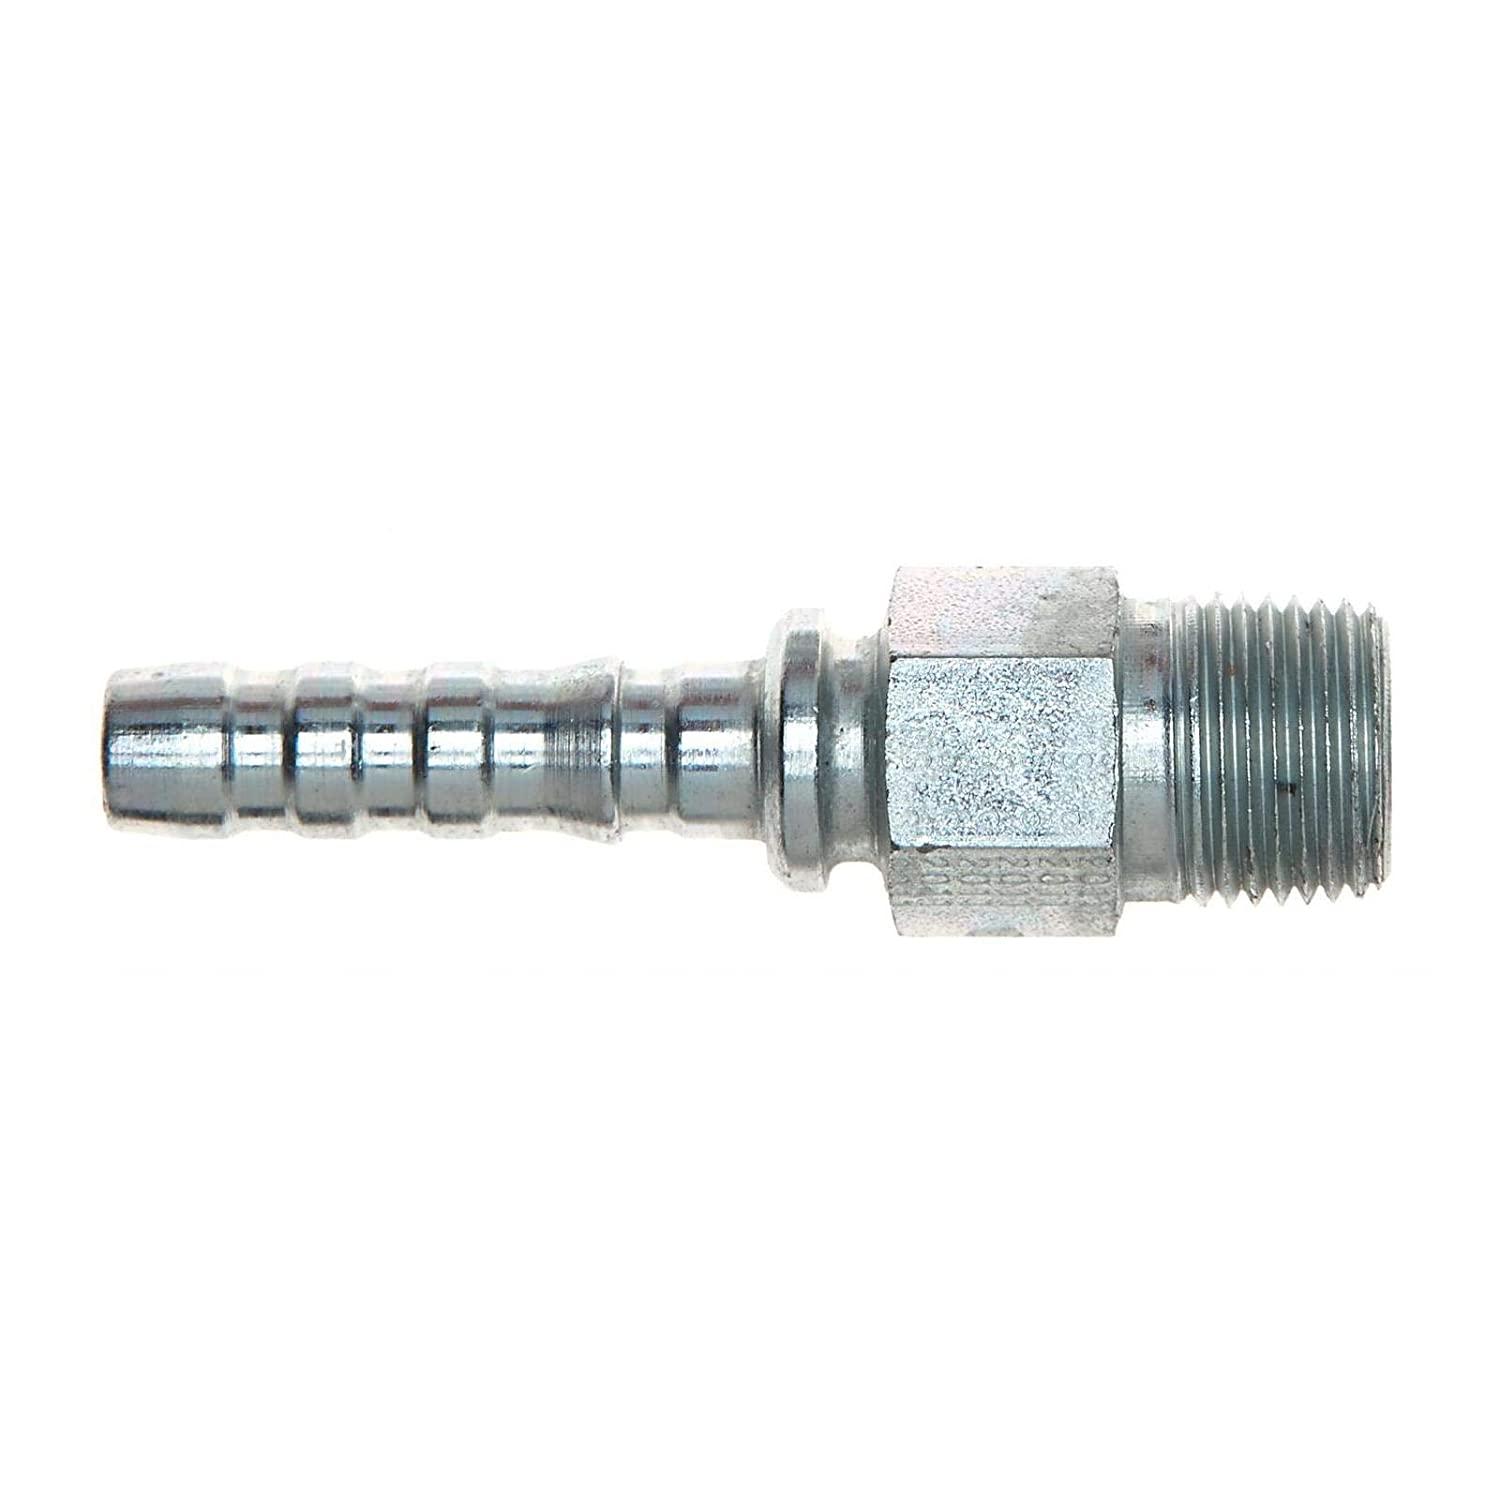 Tompkins 4245-S-04-04 Hose Barb Fitting Hose Barb to Ball Seat Pipe Swivel Brass 1//4 x 1//4-18 1//4 x 1//4-18